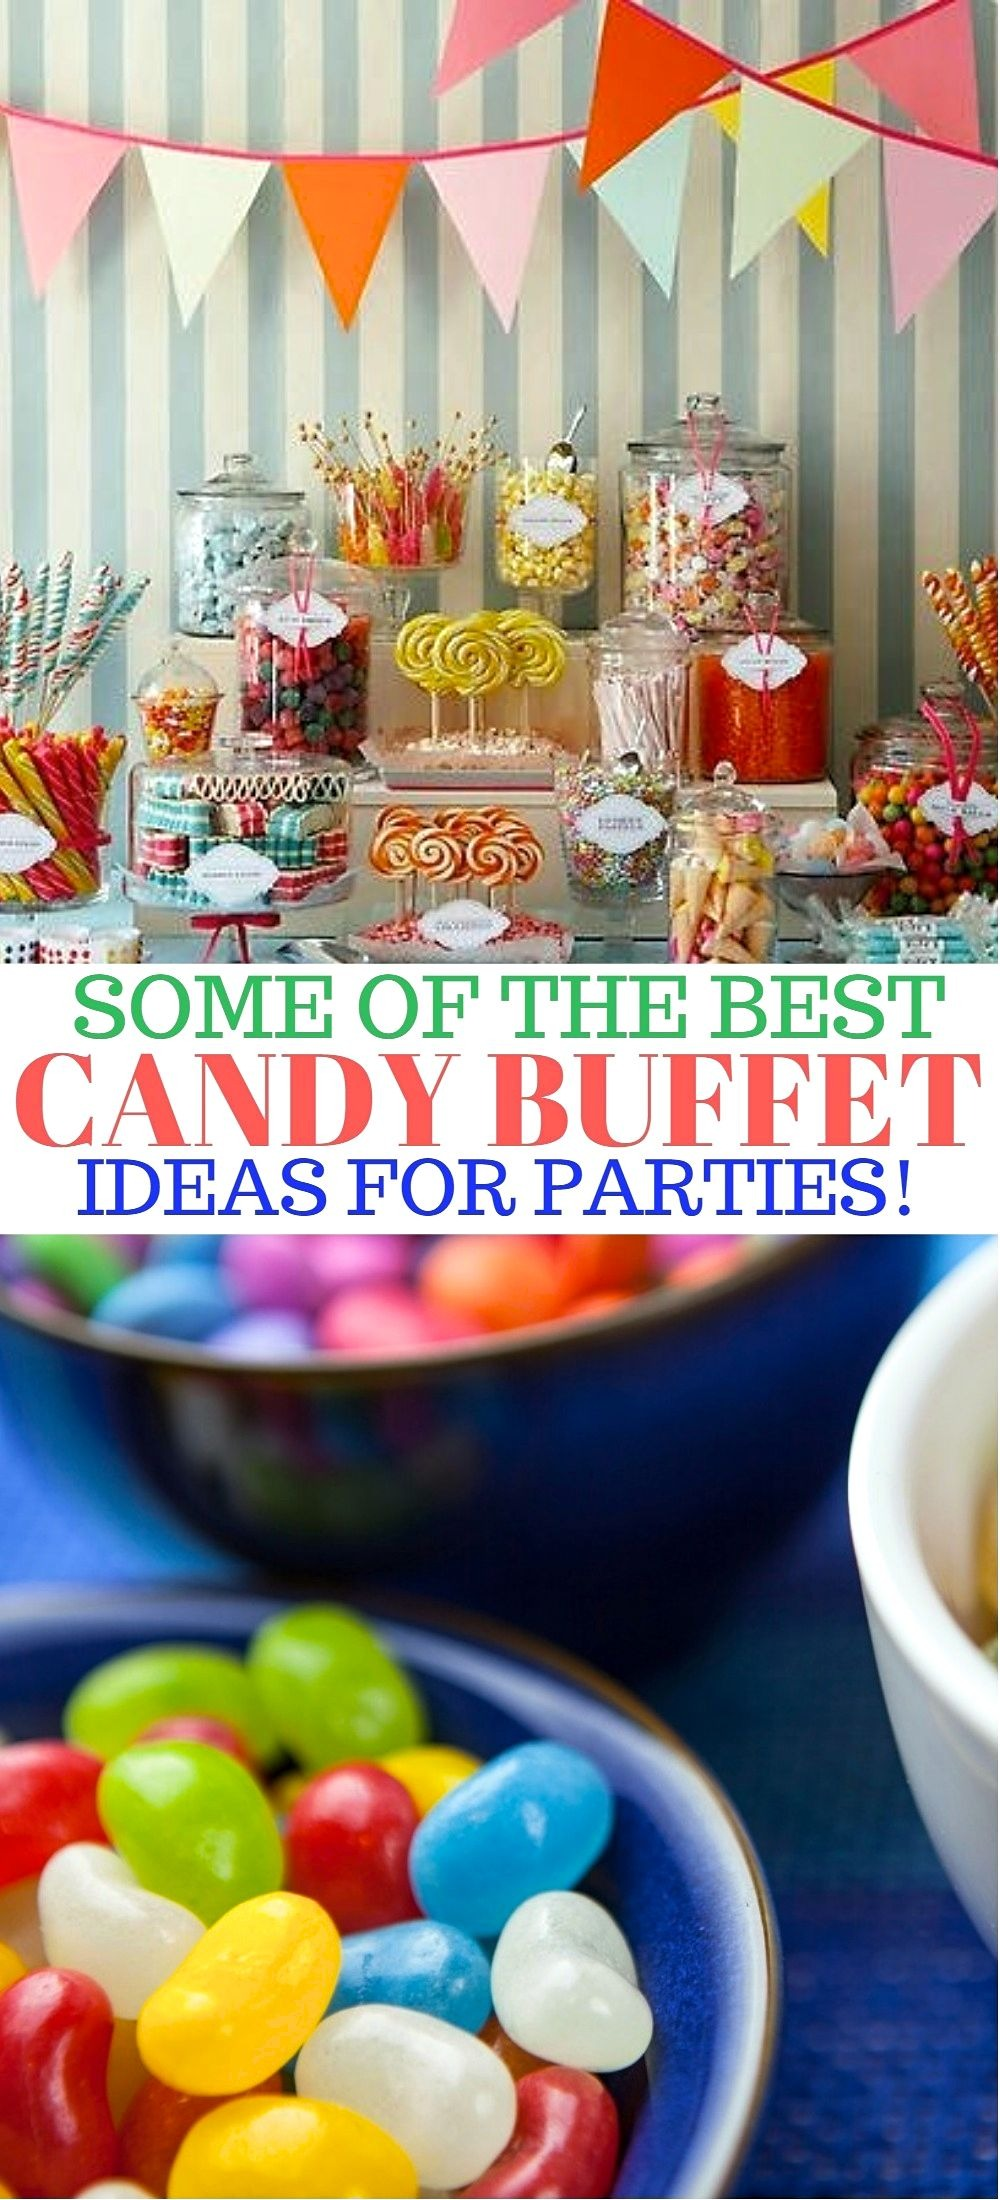 9 of The Best Awesome Candy Buffet Ideas for Your Party - One of the cutest and sweetest party ideas is really catching on, candy buffets! Here are a few of the best awesome candy buffet ideas from some of the pros for your next candy buffet